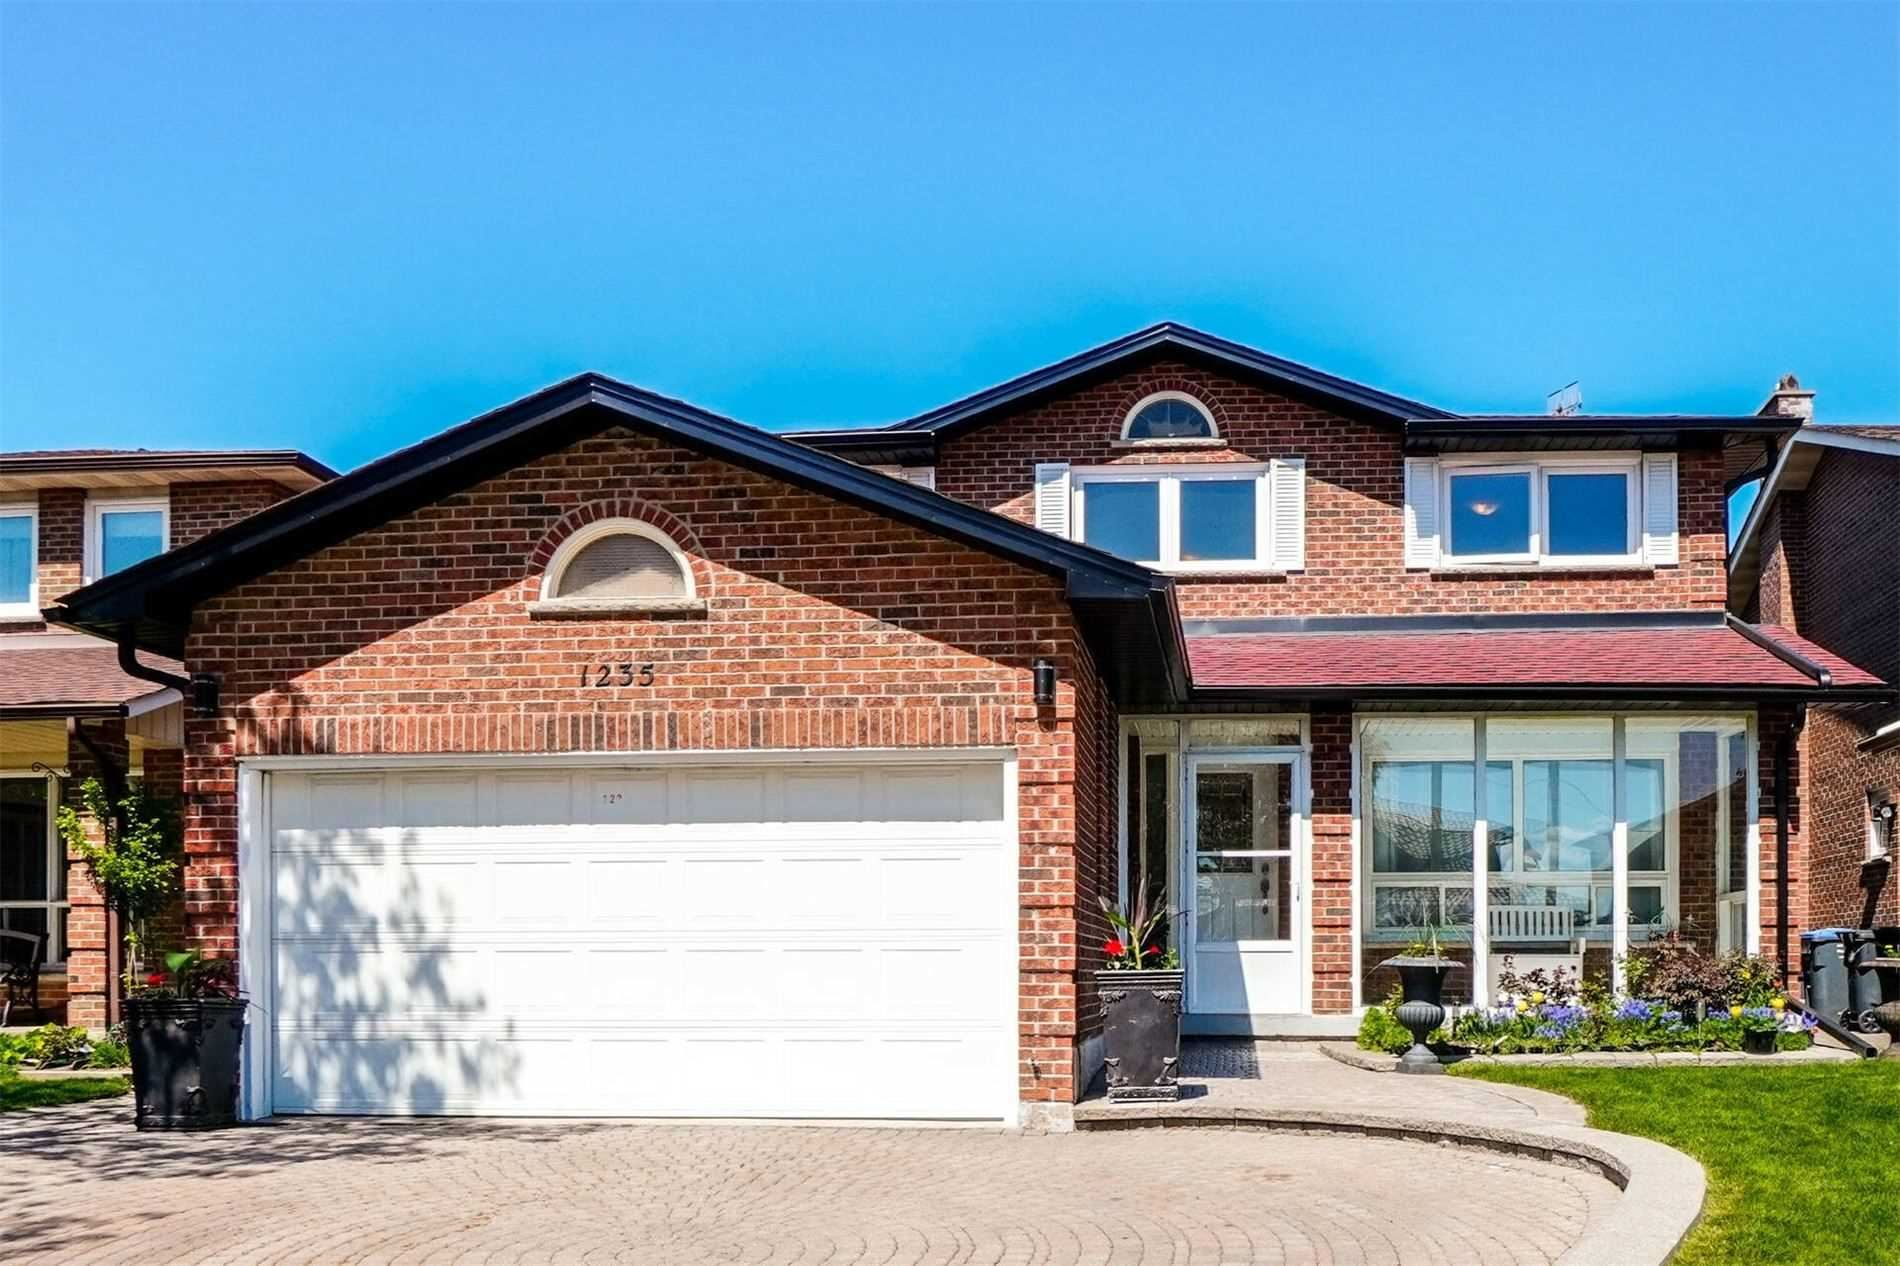 1235 Gryphon Mews, Mississauga, ON L4W3E1 - MLS#: W5234068